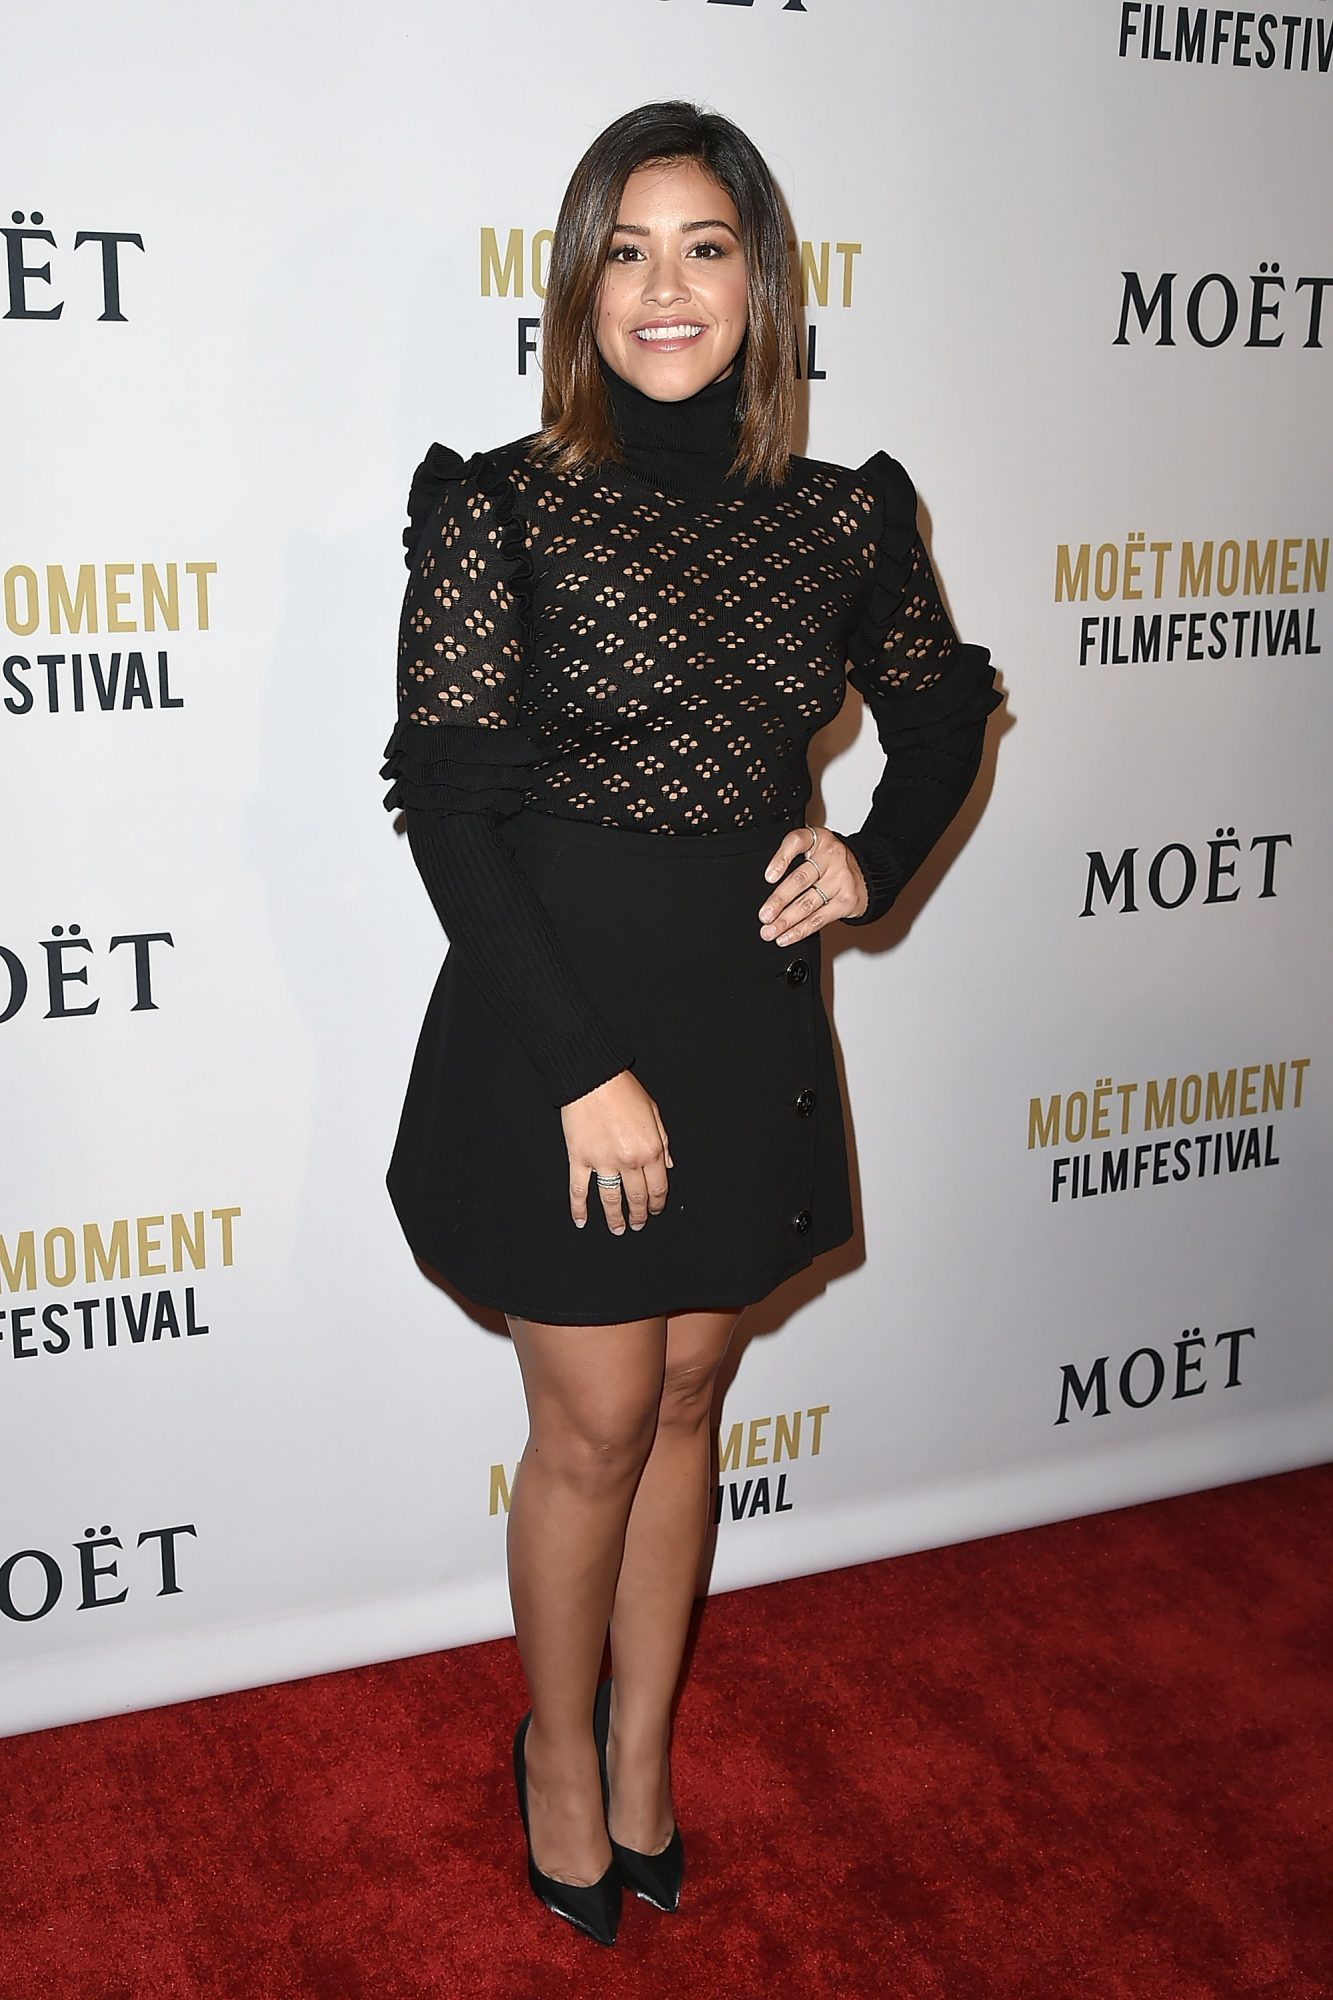 The 2nd Annual Moet Moment Film Festival